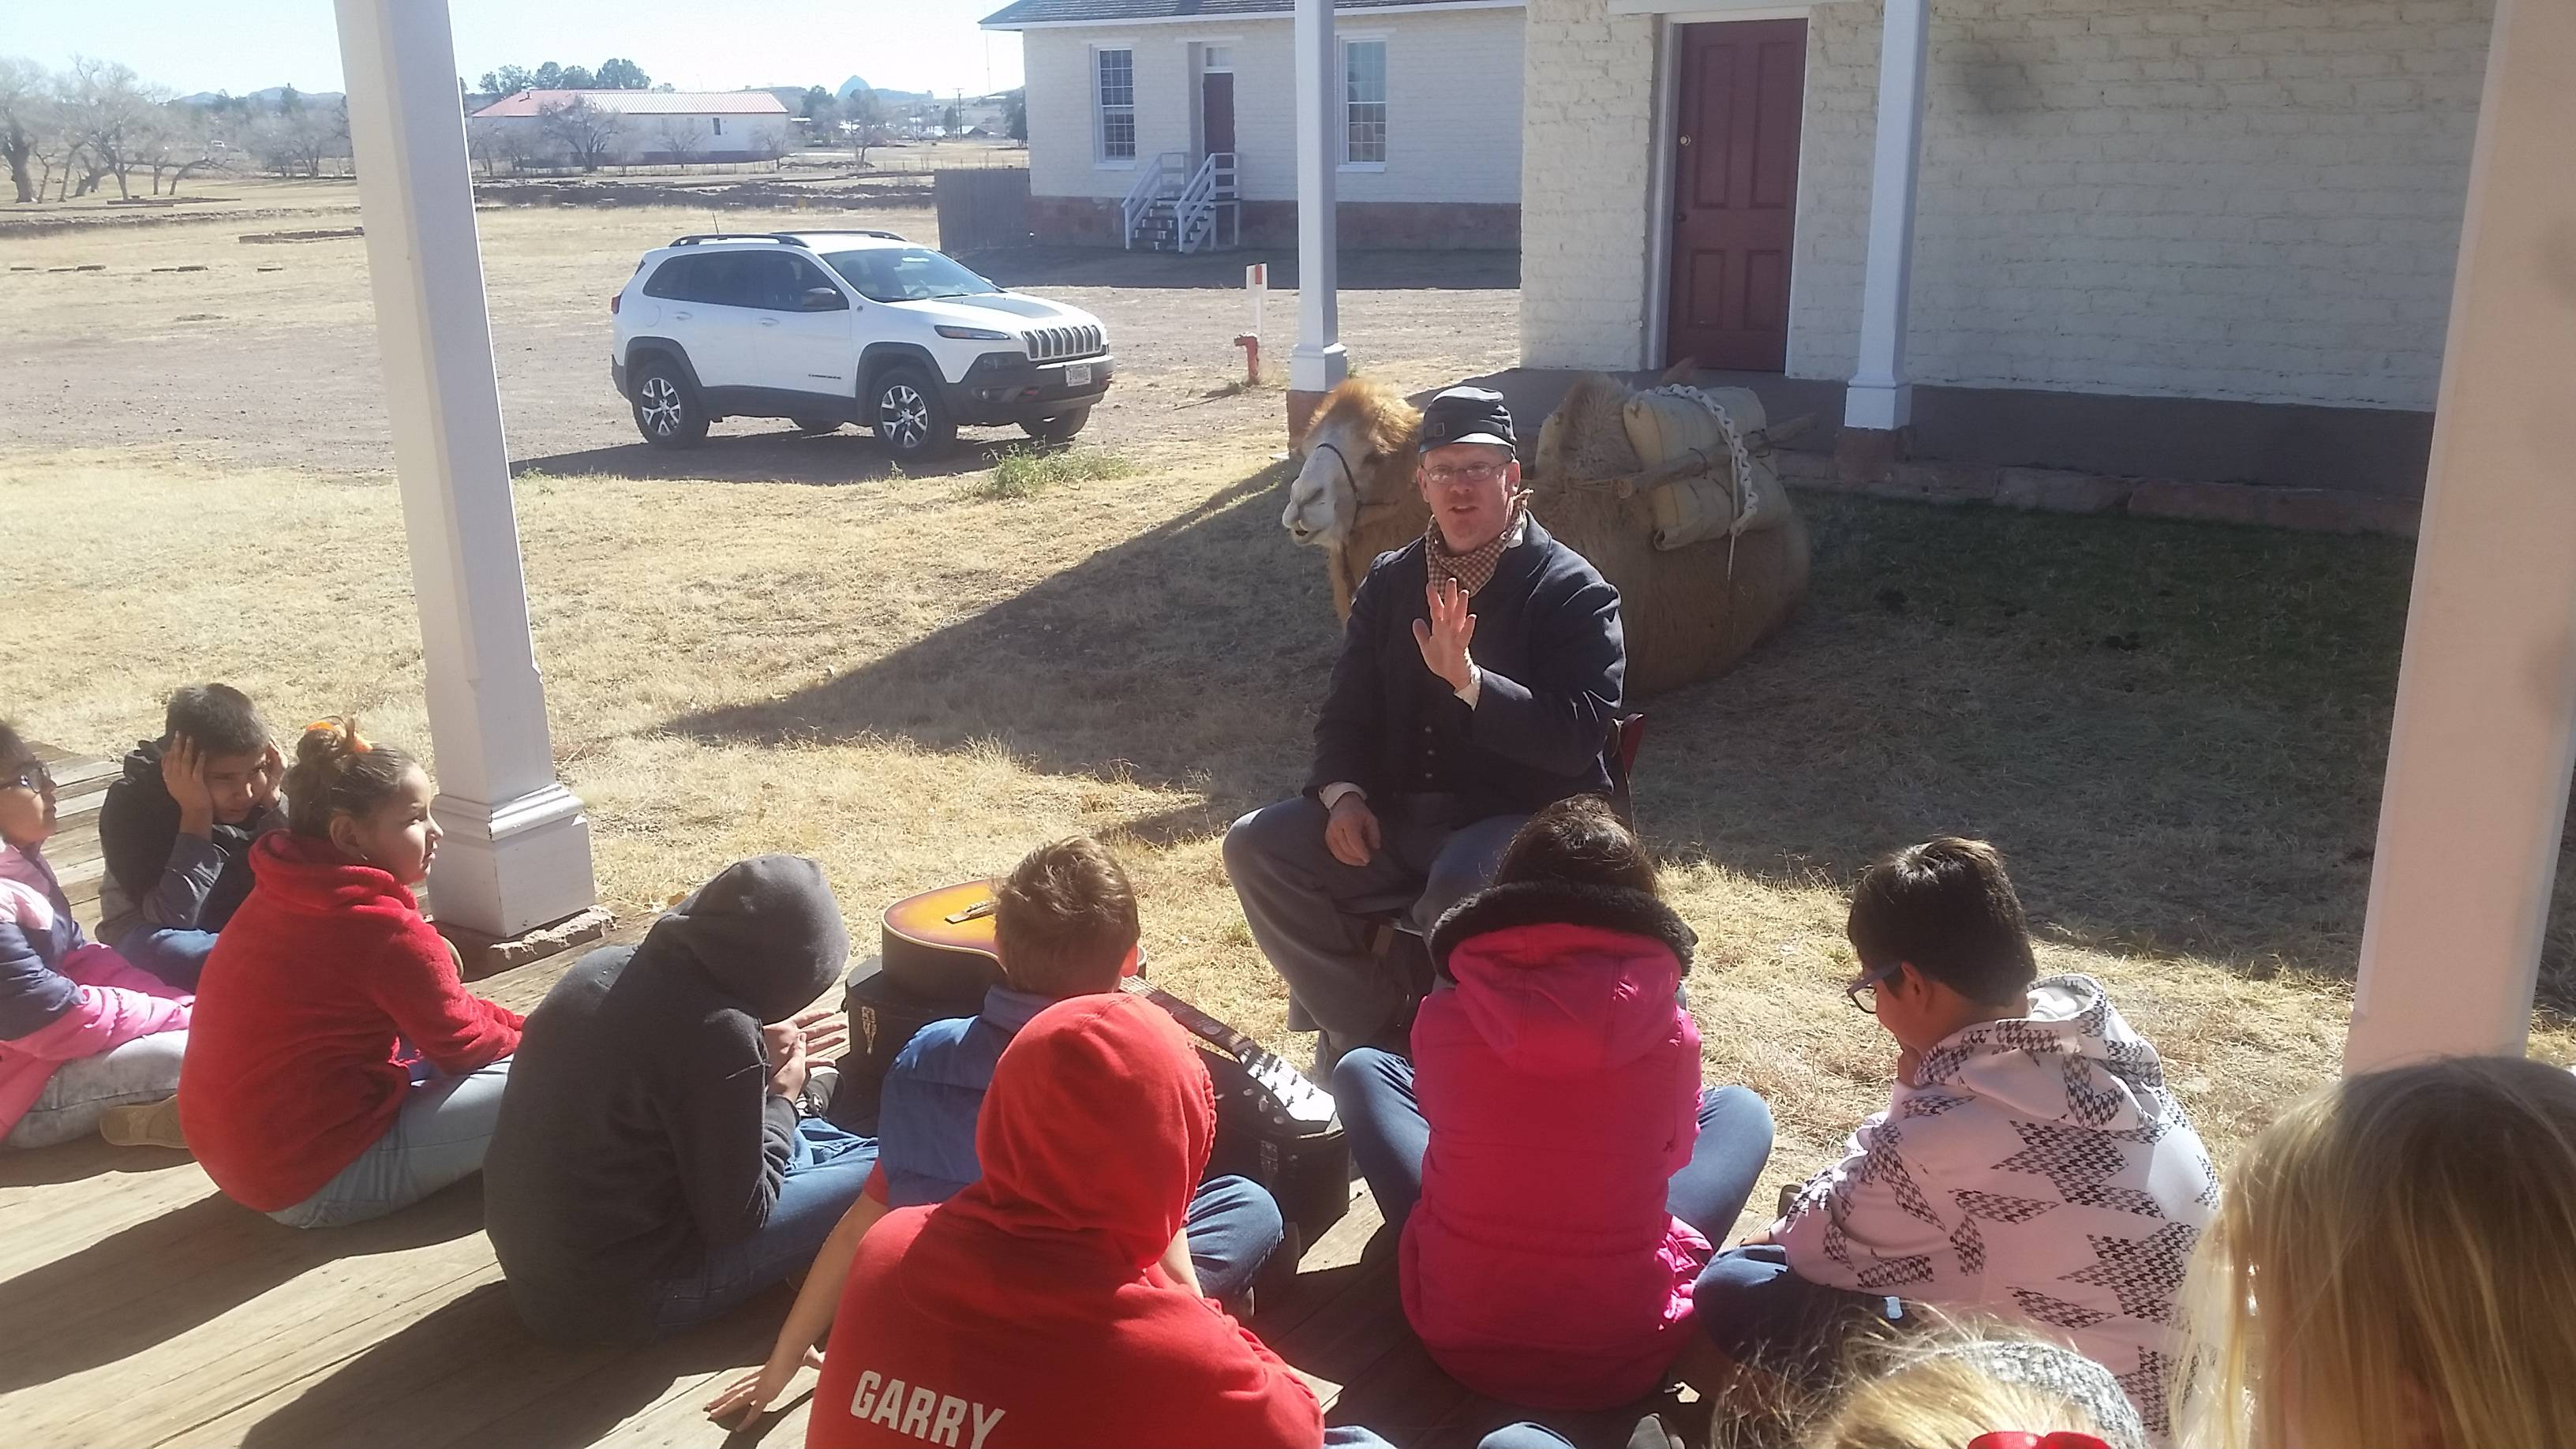 Fort Davis field trip, Dec. 13